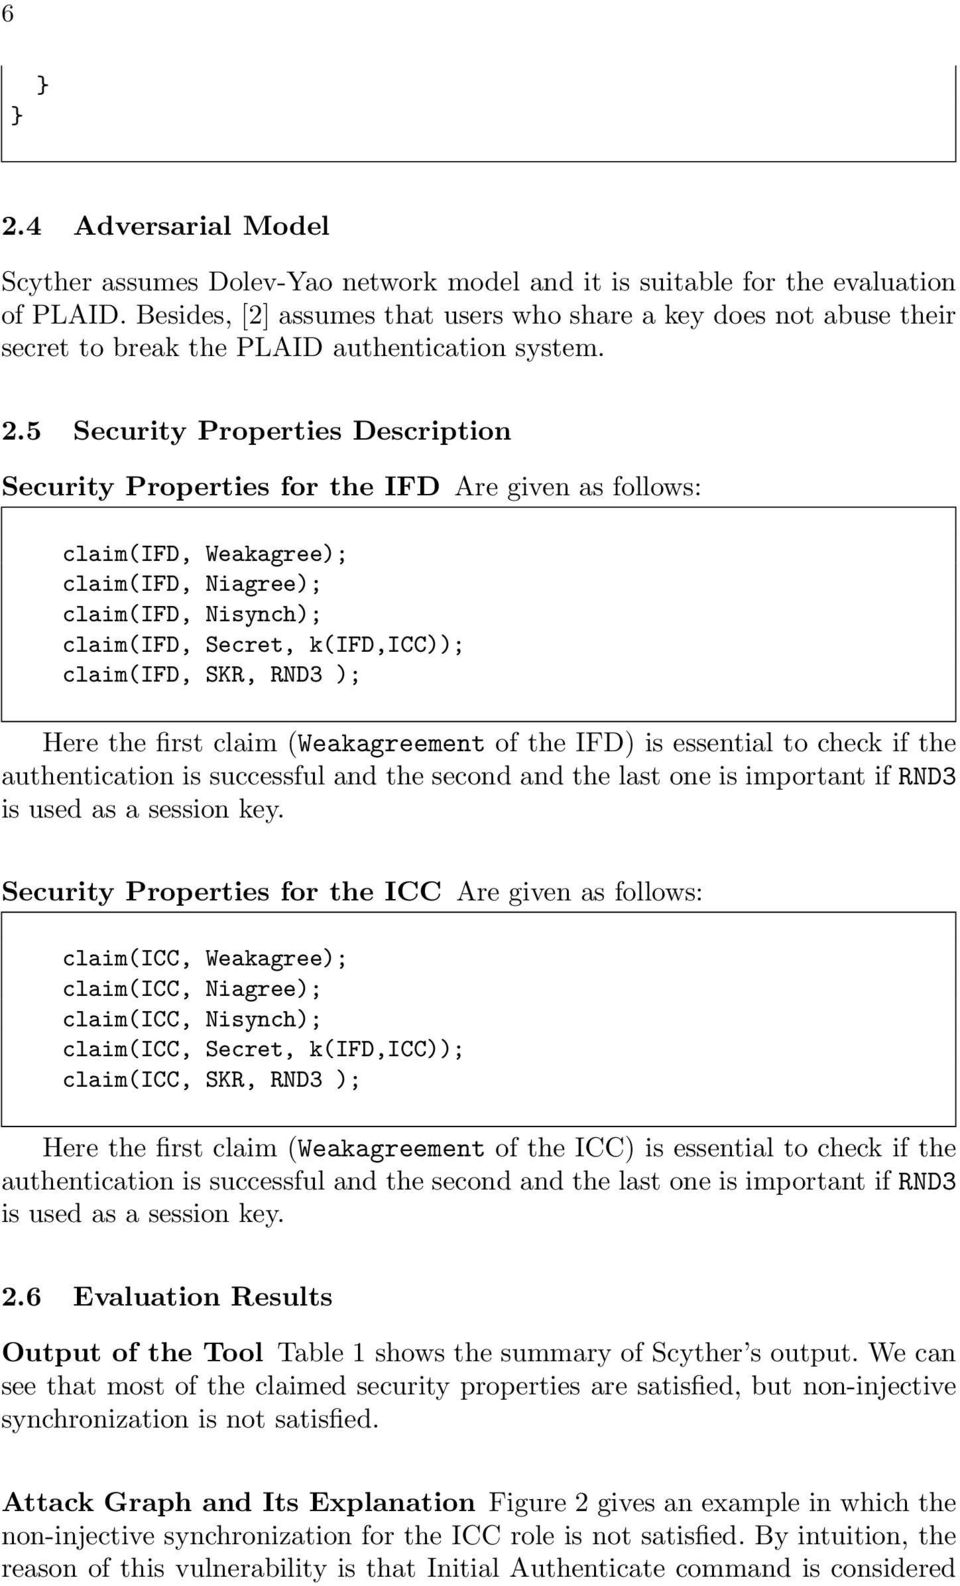 5 Security Properties Description Security Properties for the IFD Are given as follows: claim(ifd, Weakagree); claim(ifd, Niagree); claim(ifd, Nisynch); claim(ifd, Secret, k(ifd,icc)); claim(ifd,